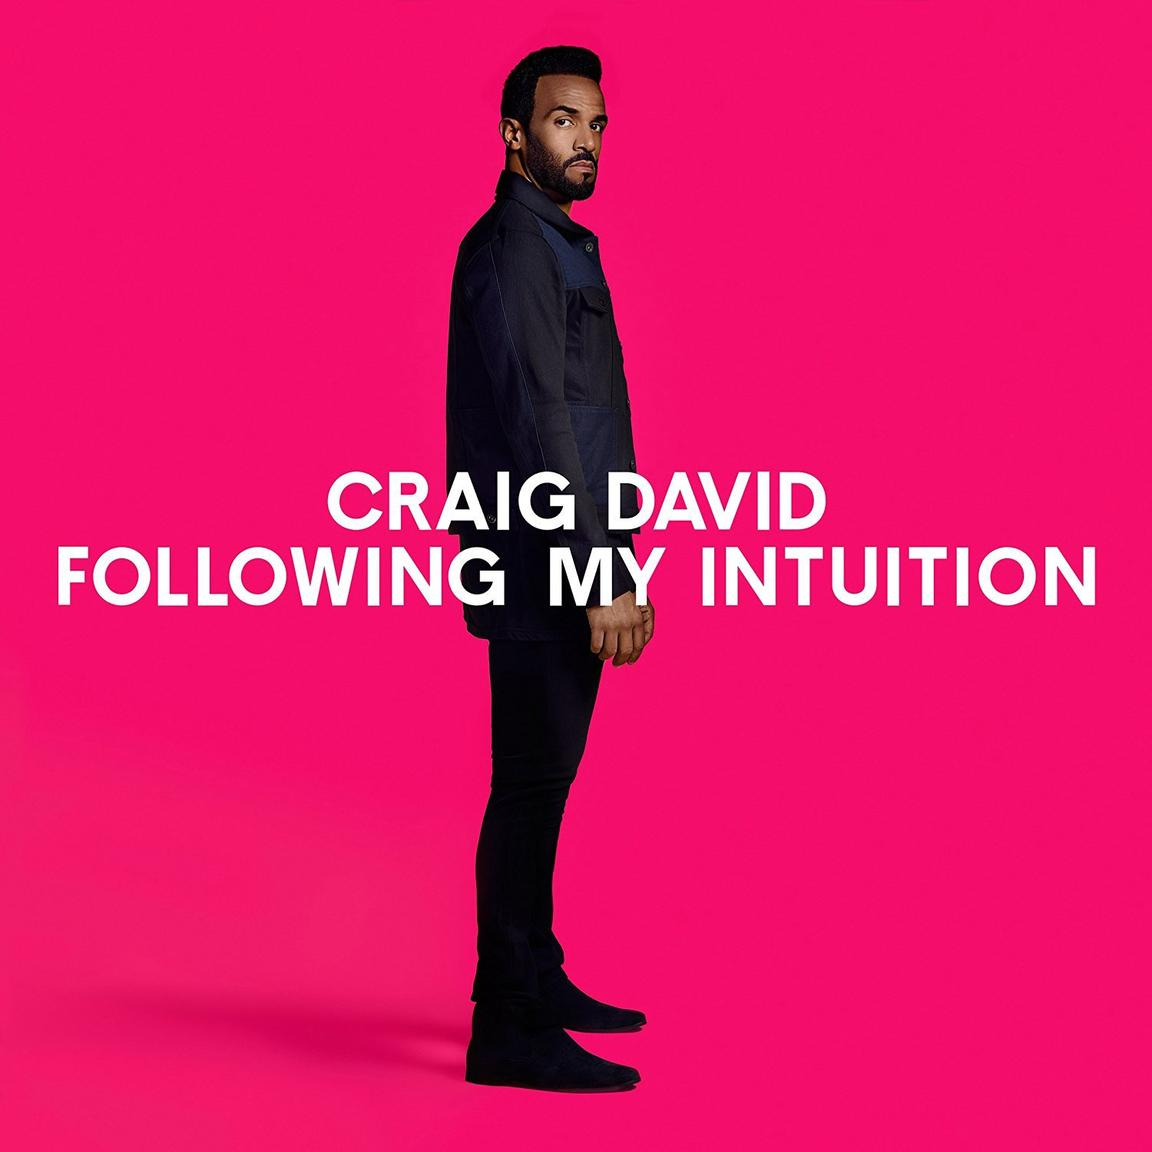 Craig David / Following My Intuition